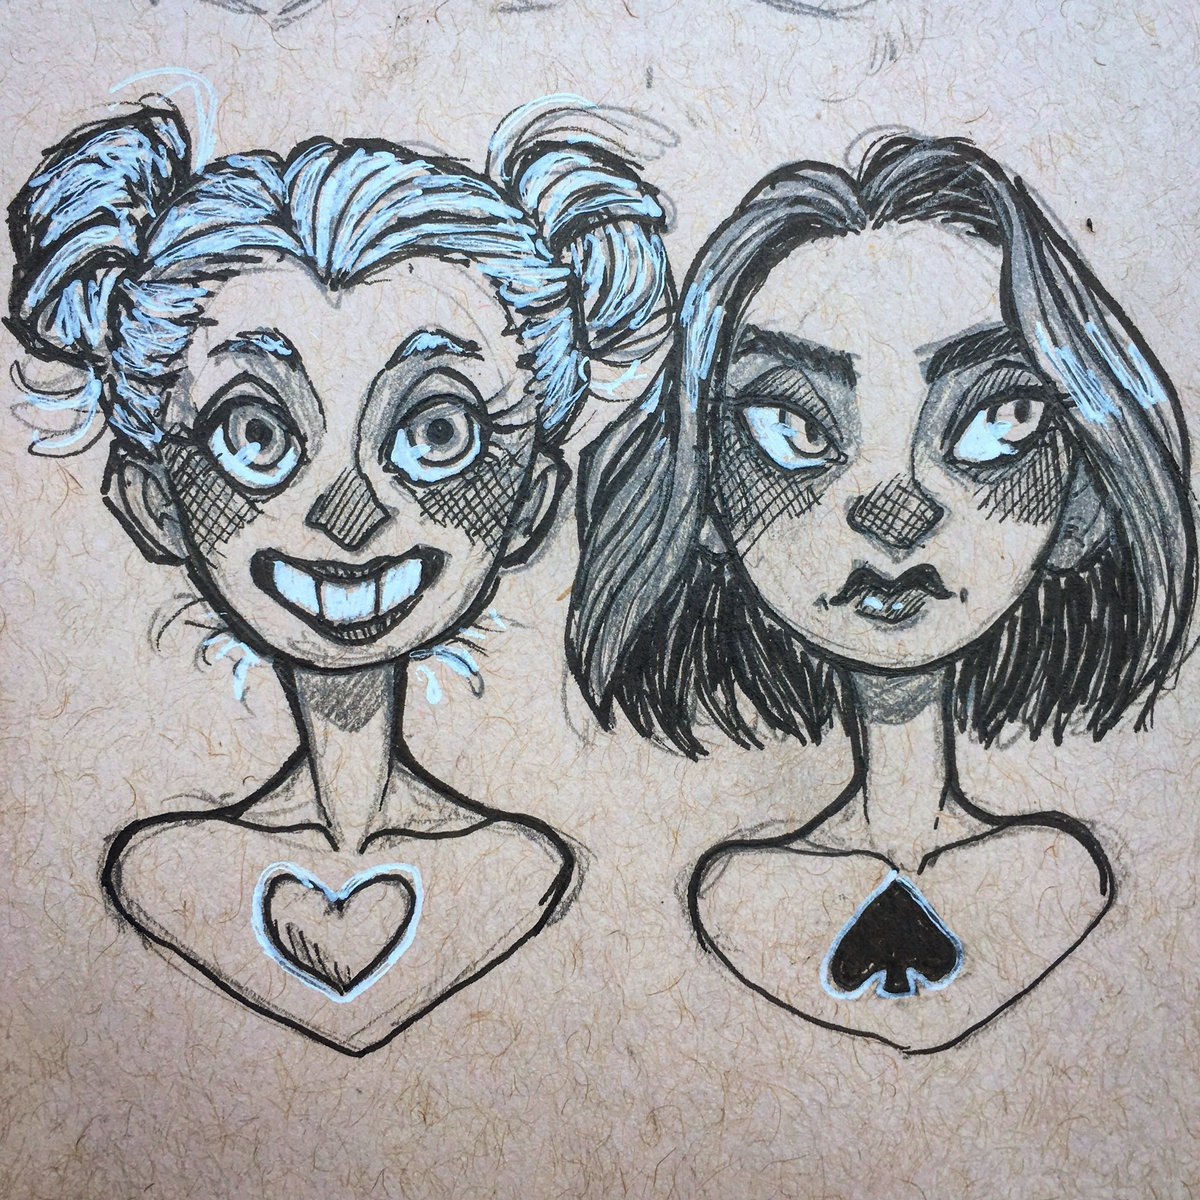 Anna ferguson on twitter four of hearts and nine of spades for cutiesaturday art sketch drawing ink pencil doodle pen portrait heart spade